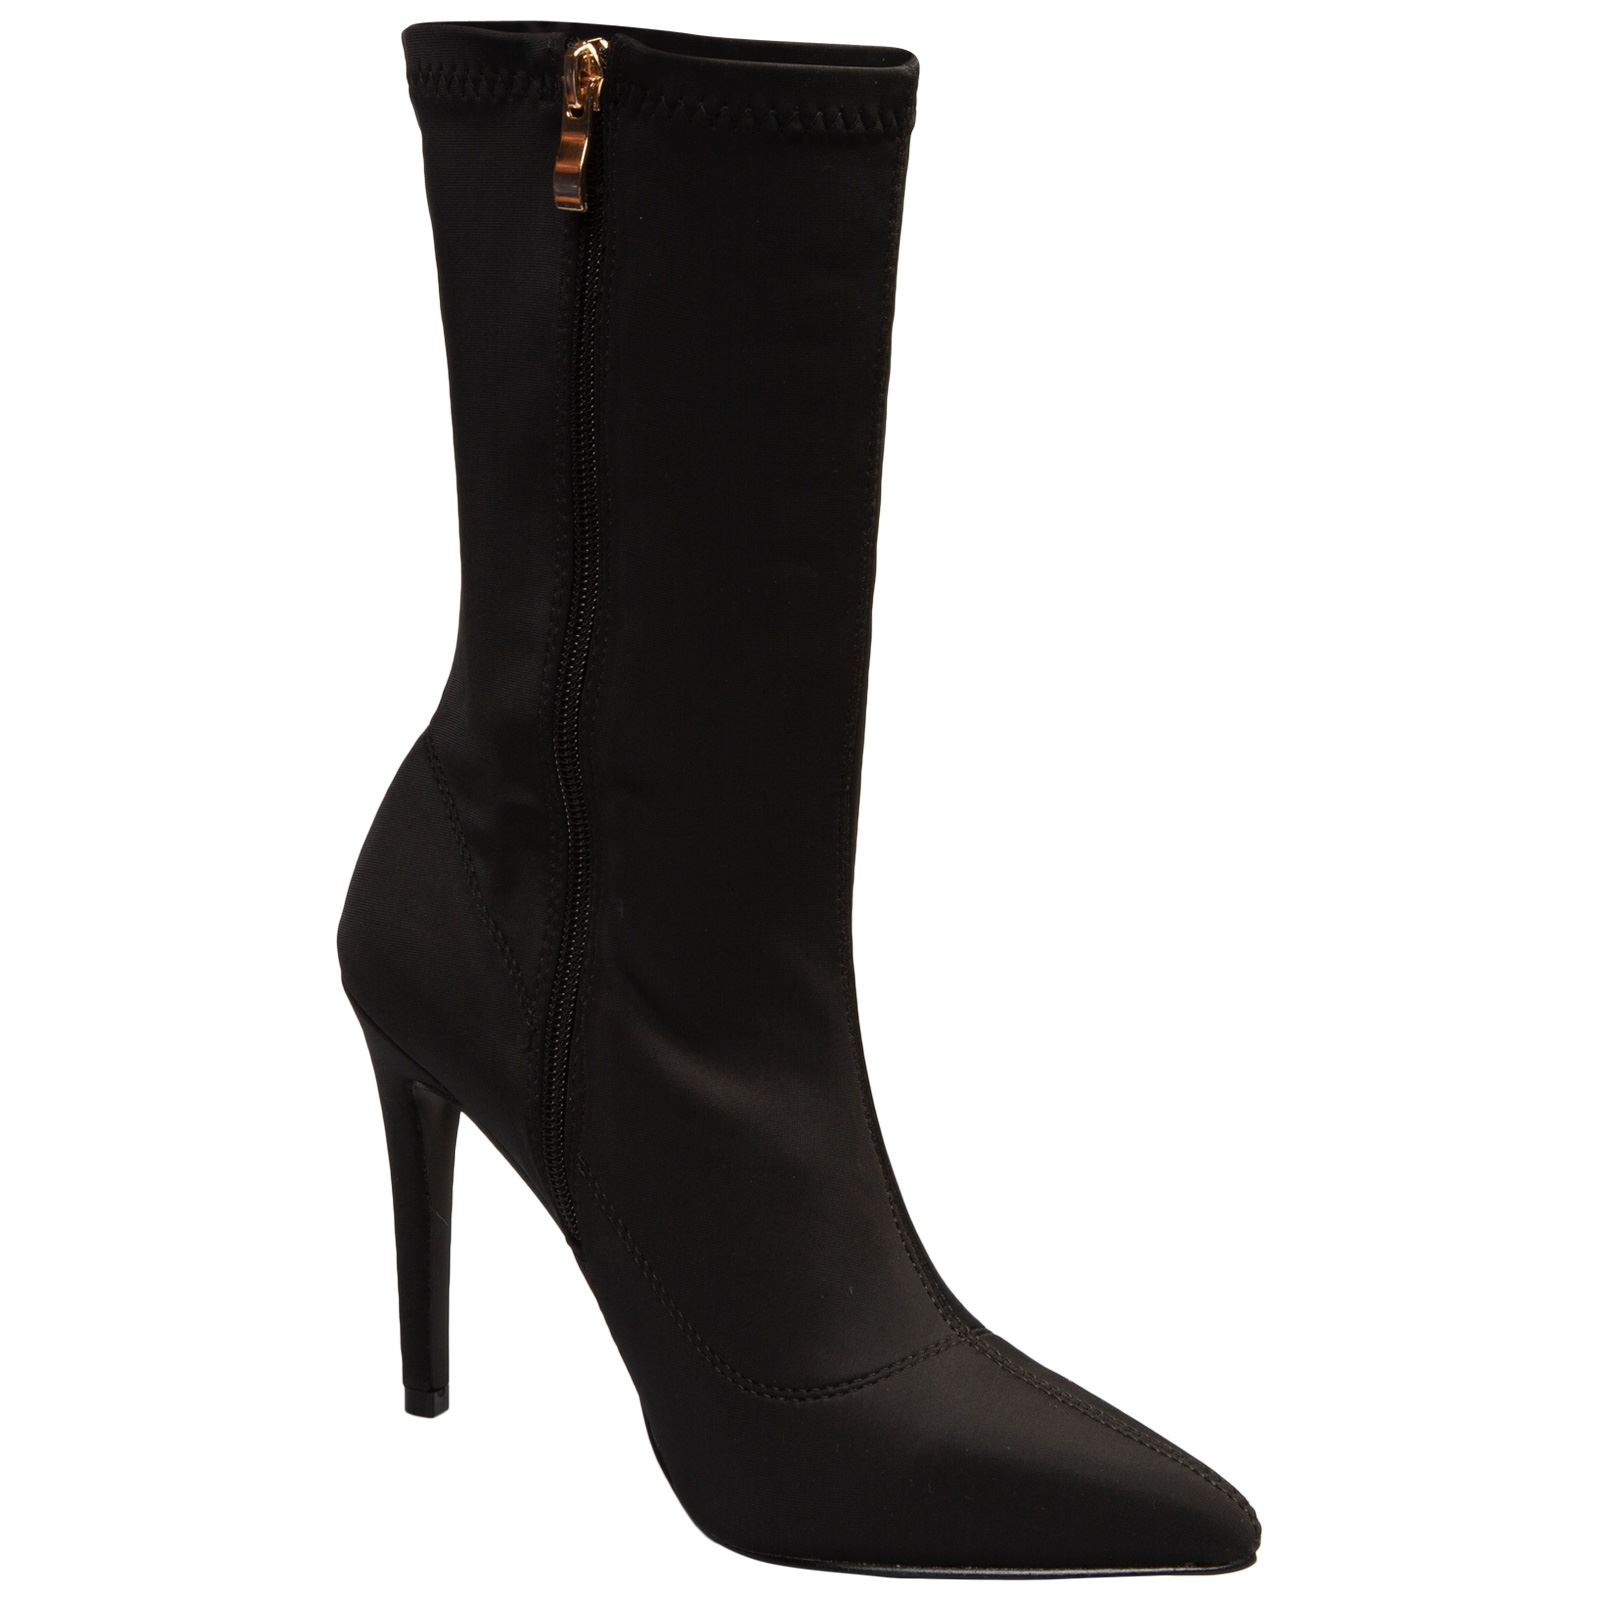 NEW-WOMENS-SHOES-LADIES-ANKLE-BOOTS-ZIP-UP-STRETCH-CALF-STILETTO-FASHION-CASUAL thumbnail 5